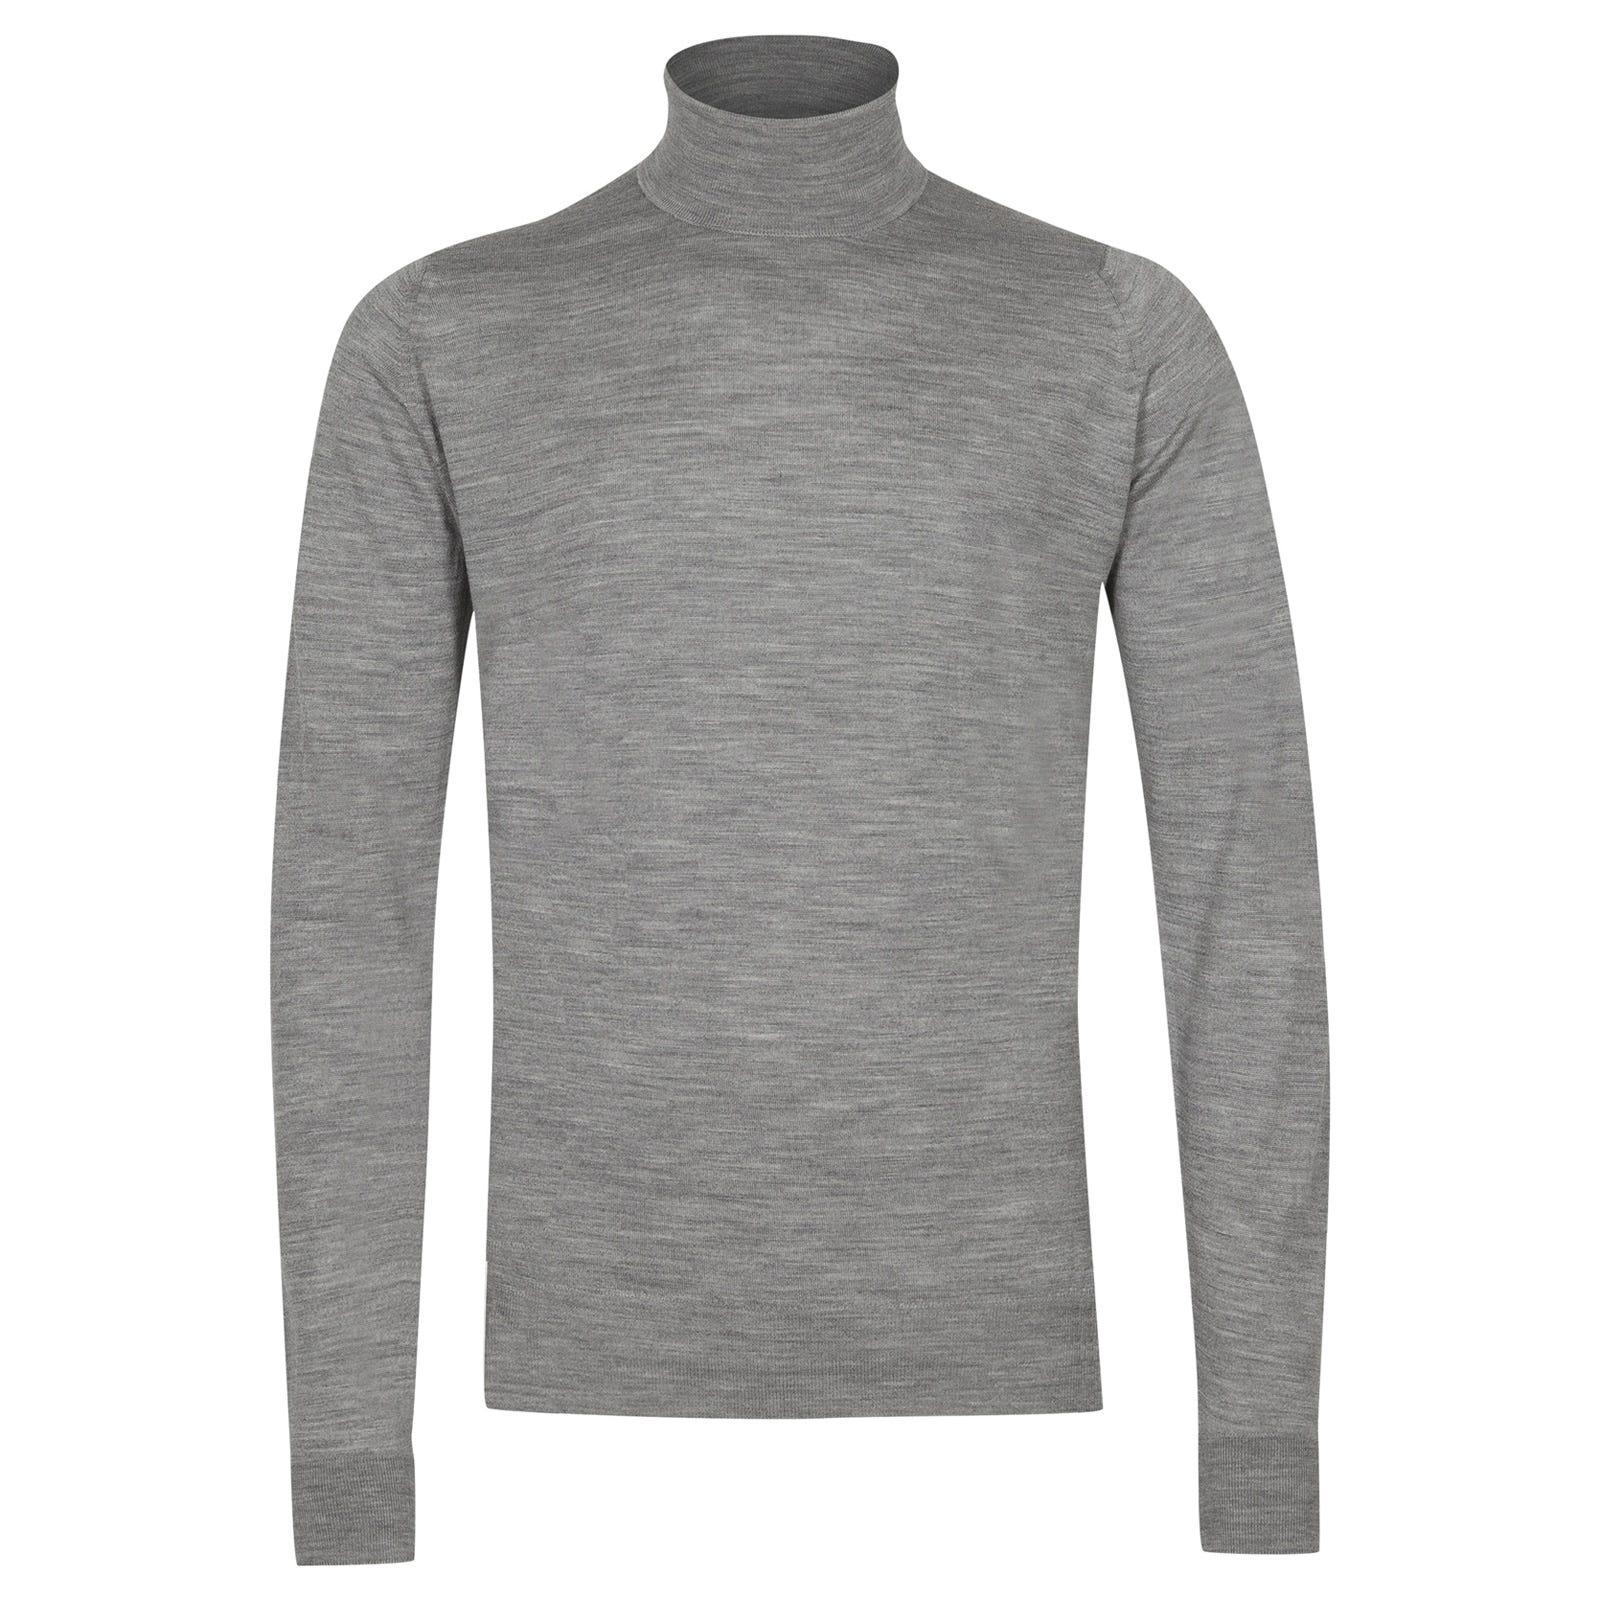 John Smedley richards Merino Wool Pullover in Silver-XXL